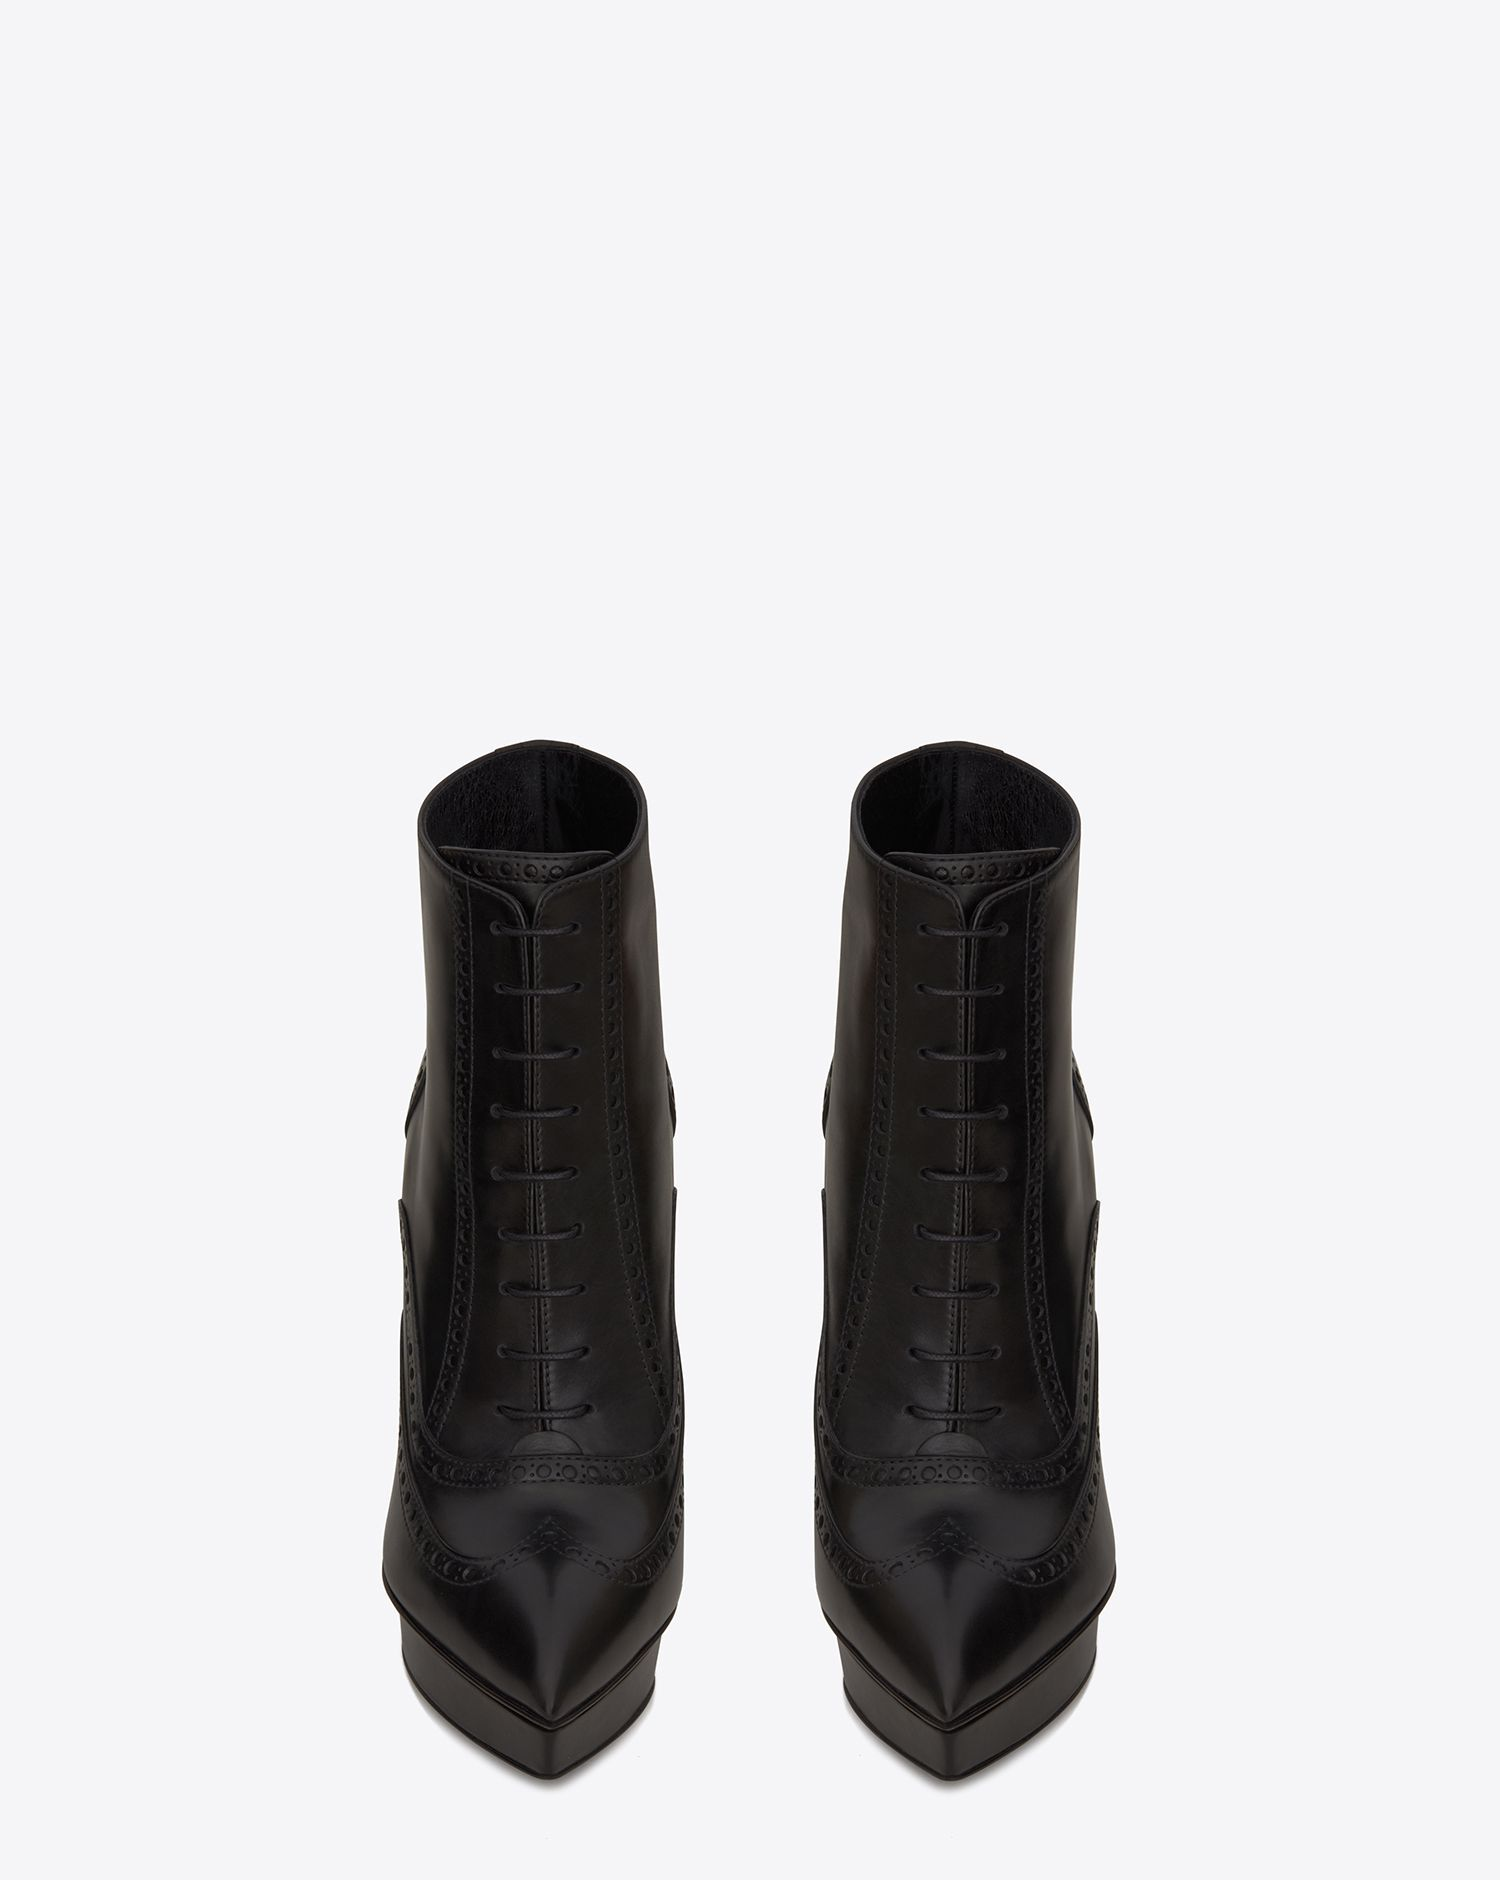 Saint Laurent Classic Janis Buckle Ankle Boot In Black Leather Ysl